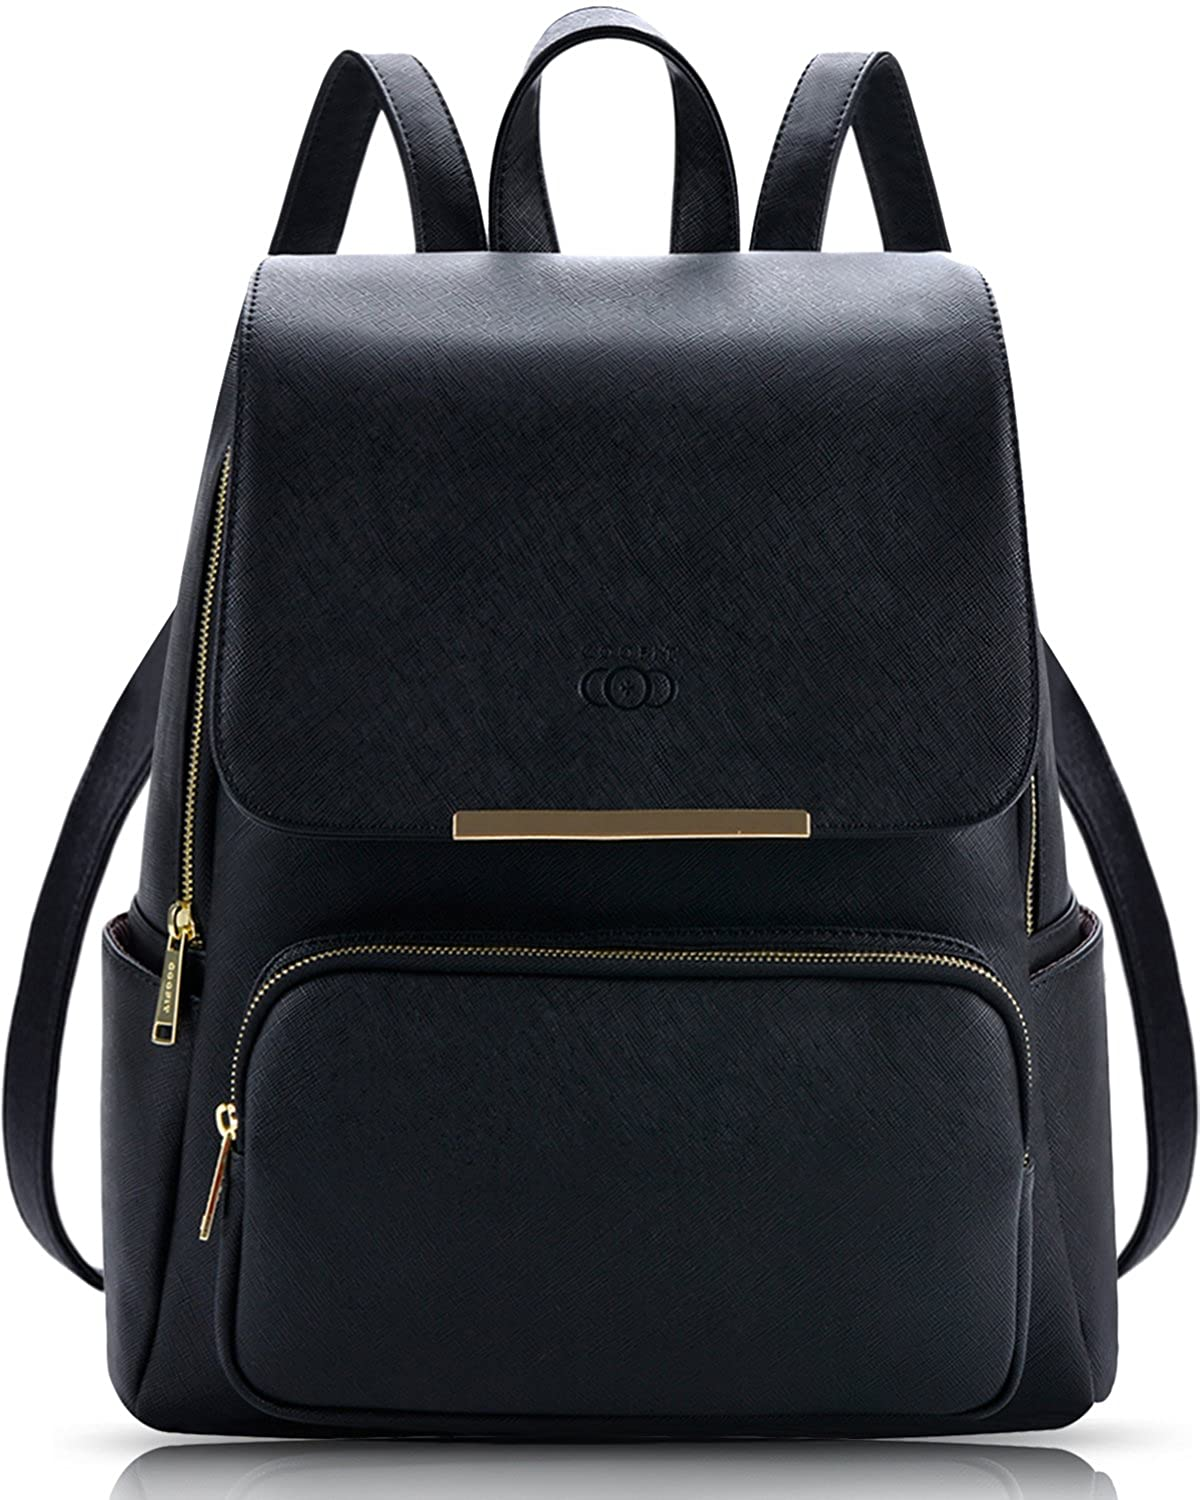 Leather Backpack, COOFIT Black PU